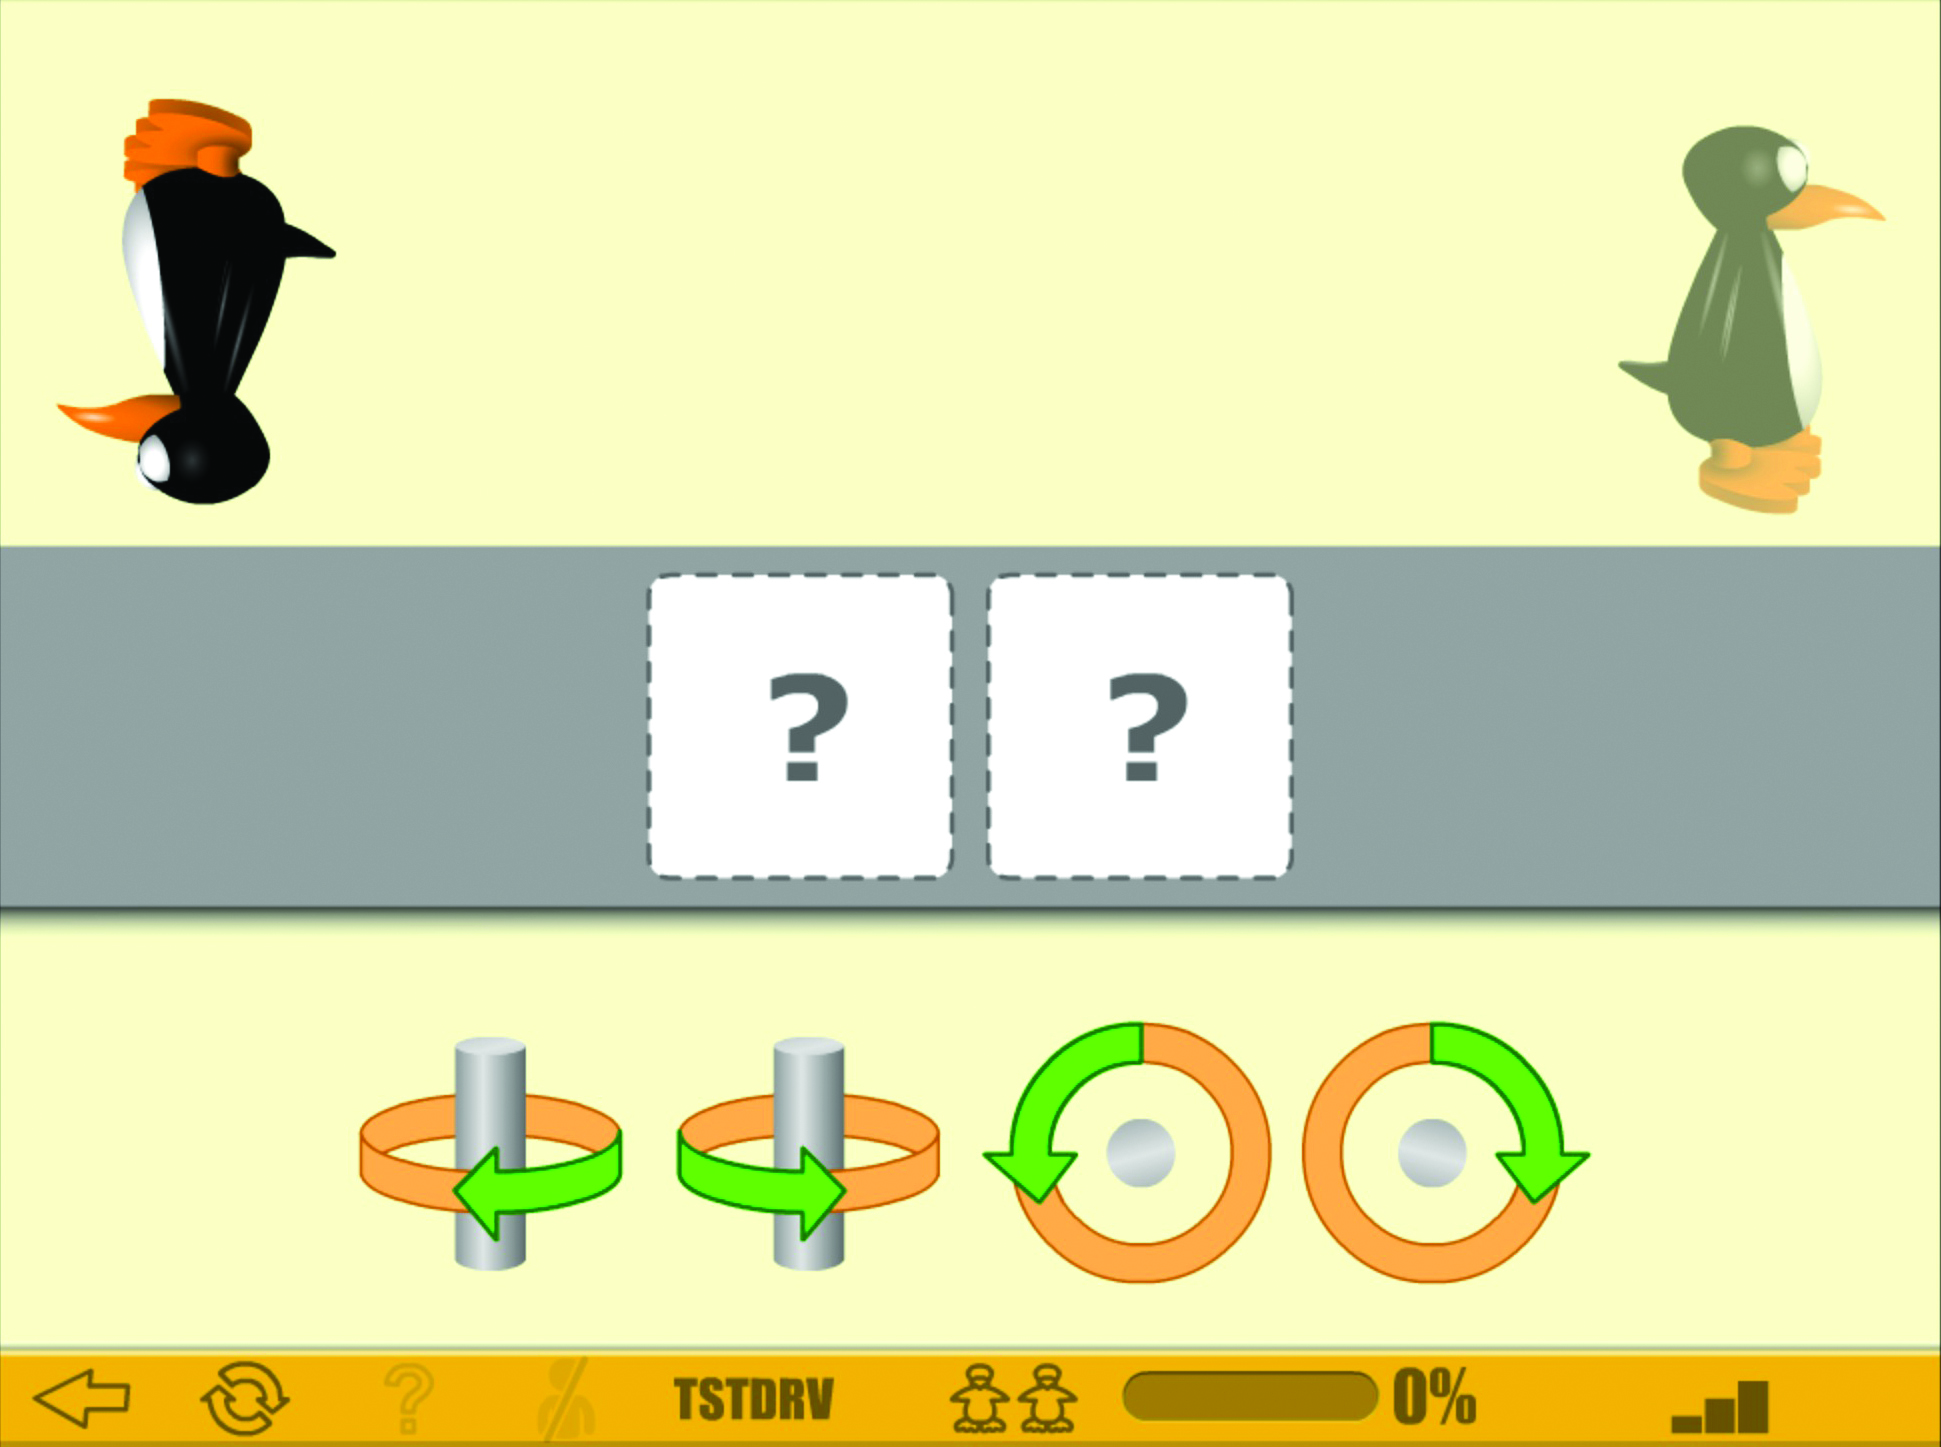 What are some popular JiJi Math games?